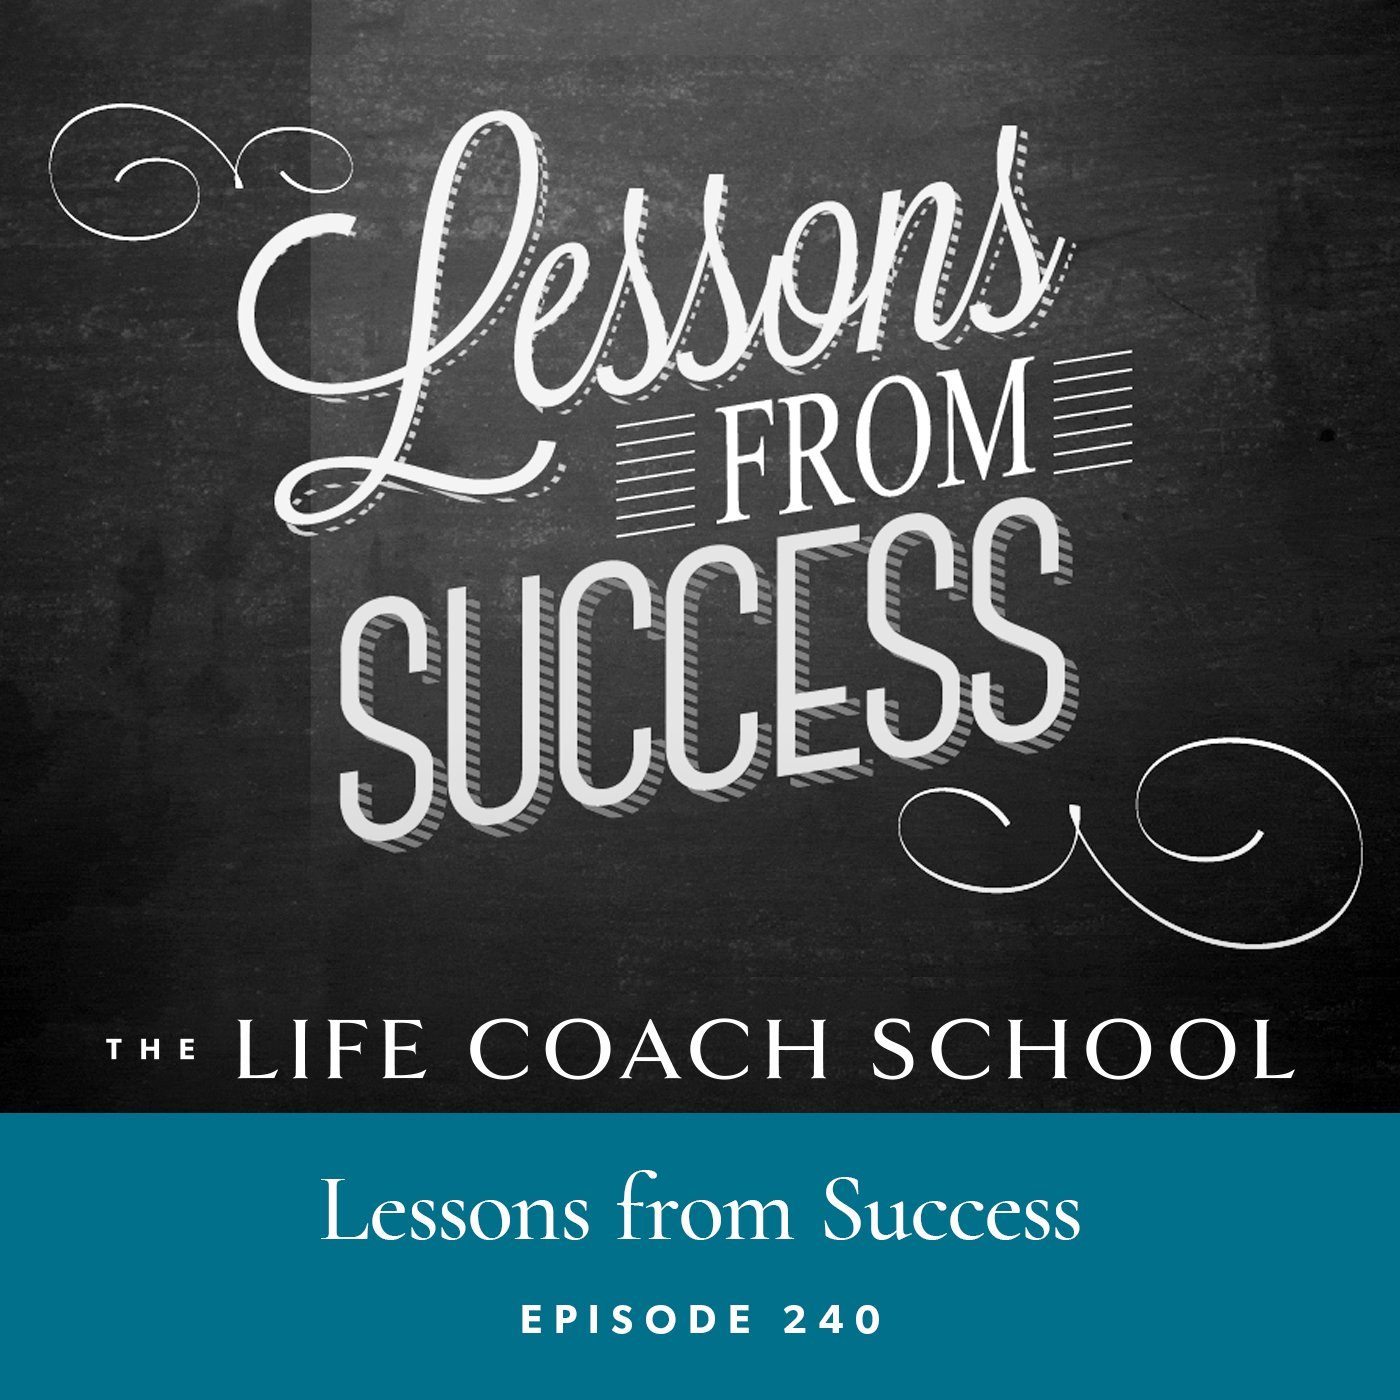 The Life Coach School Podcast with Brooke Castillo | Episode 240 | Lessons from Success